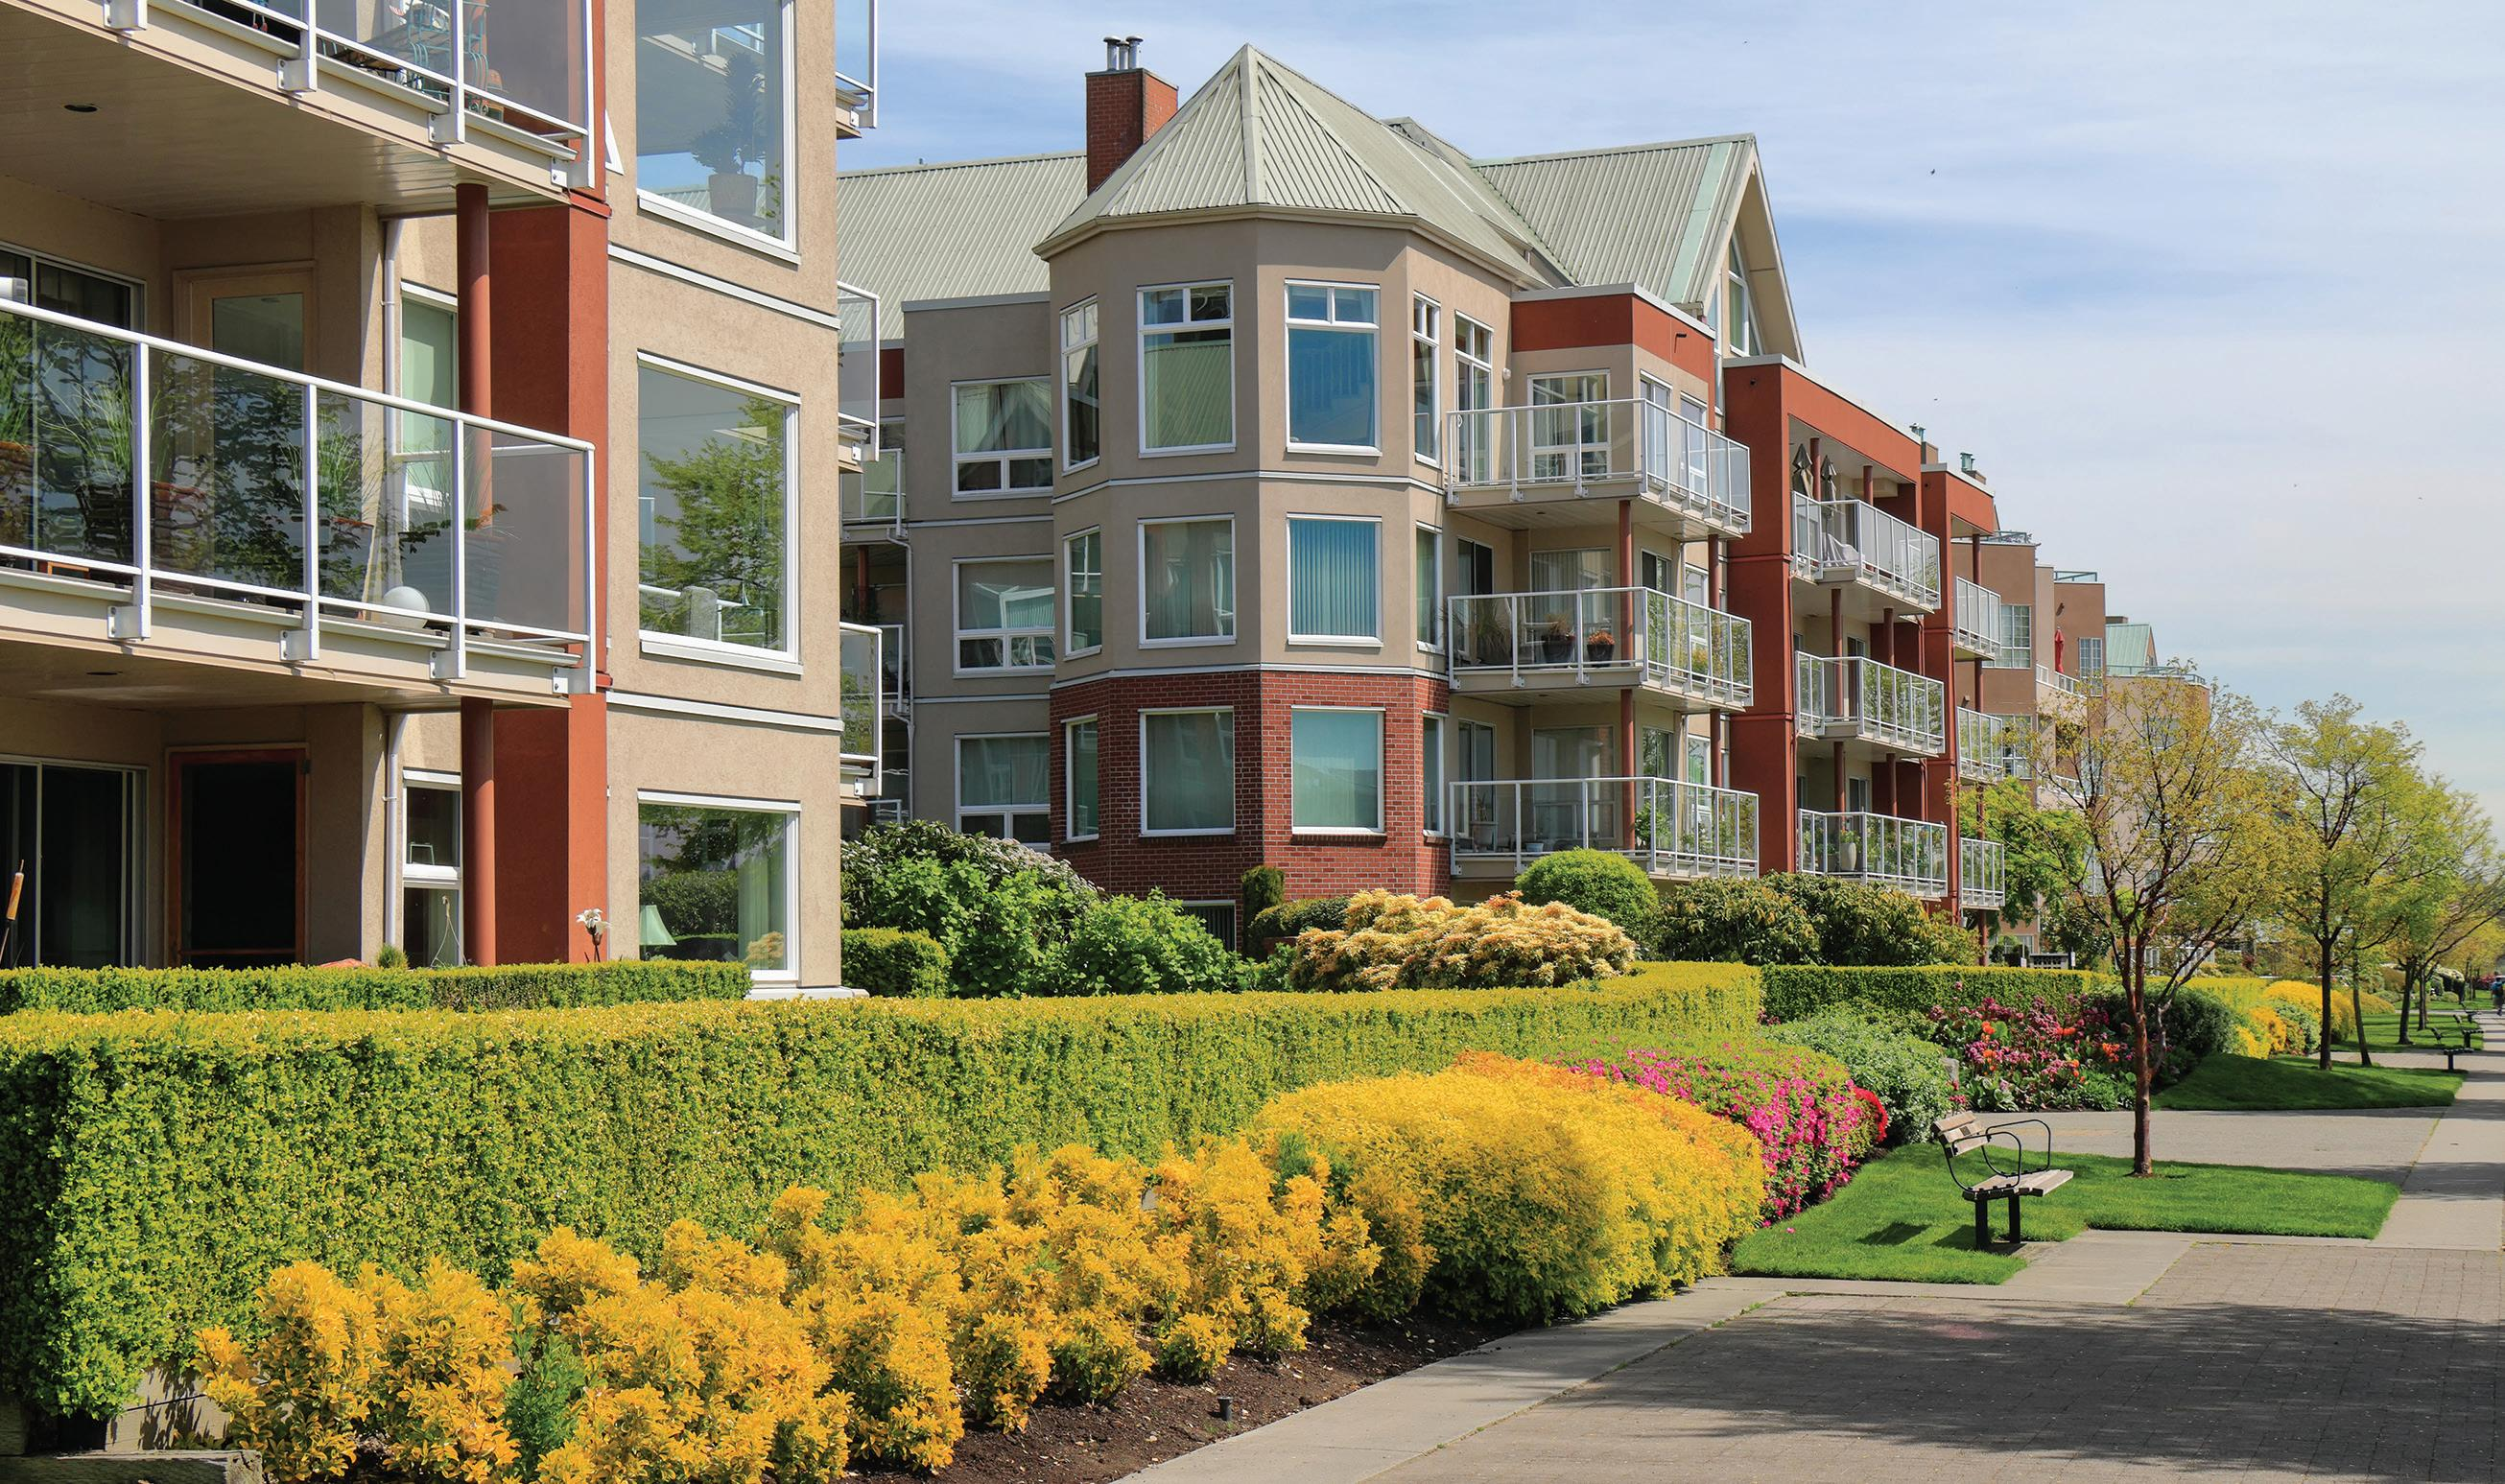 Page 18 of Multifamily Living Trends